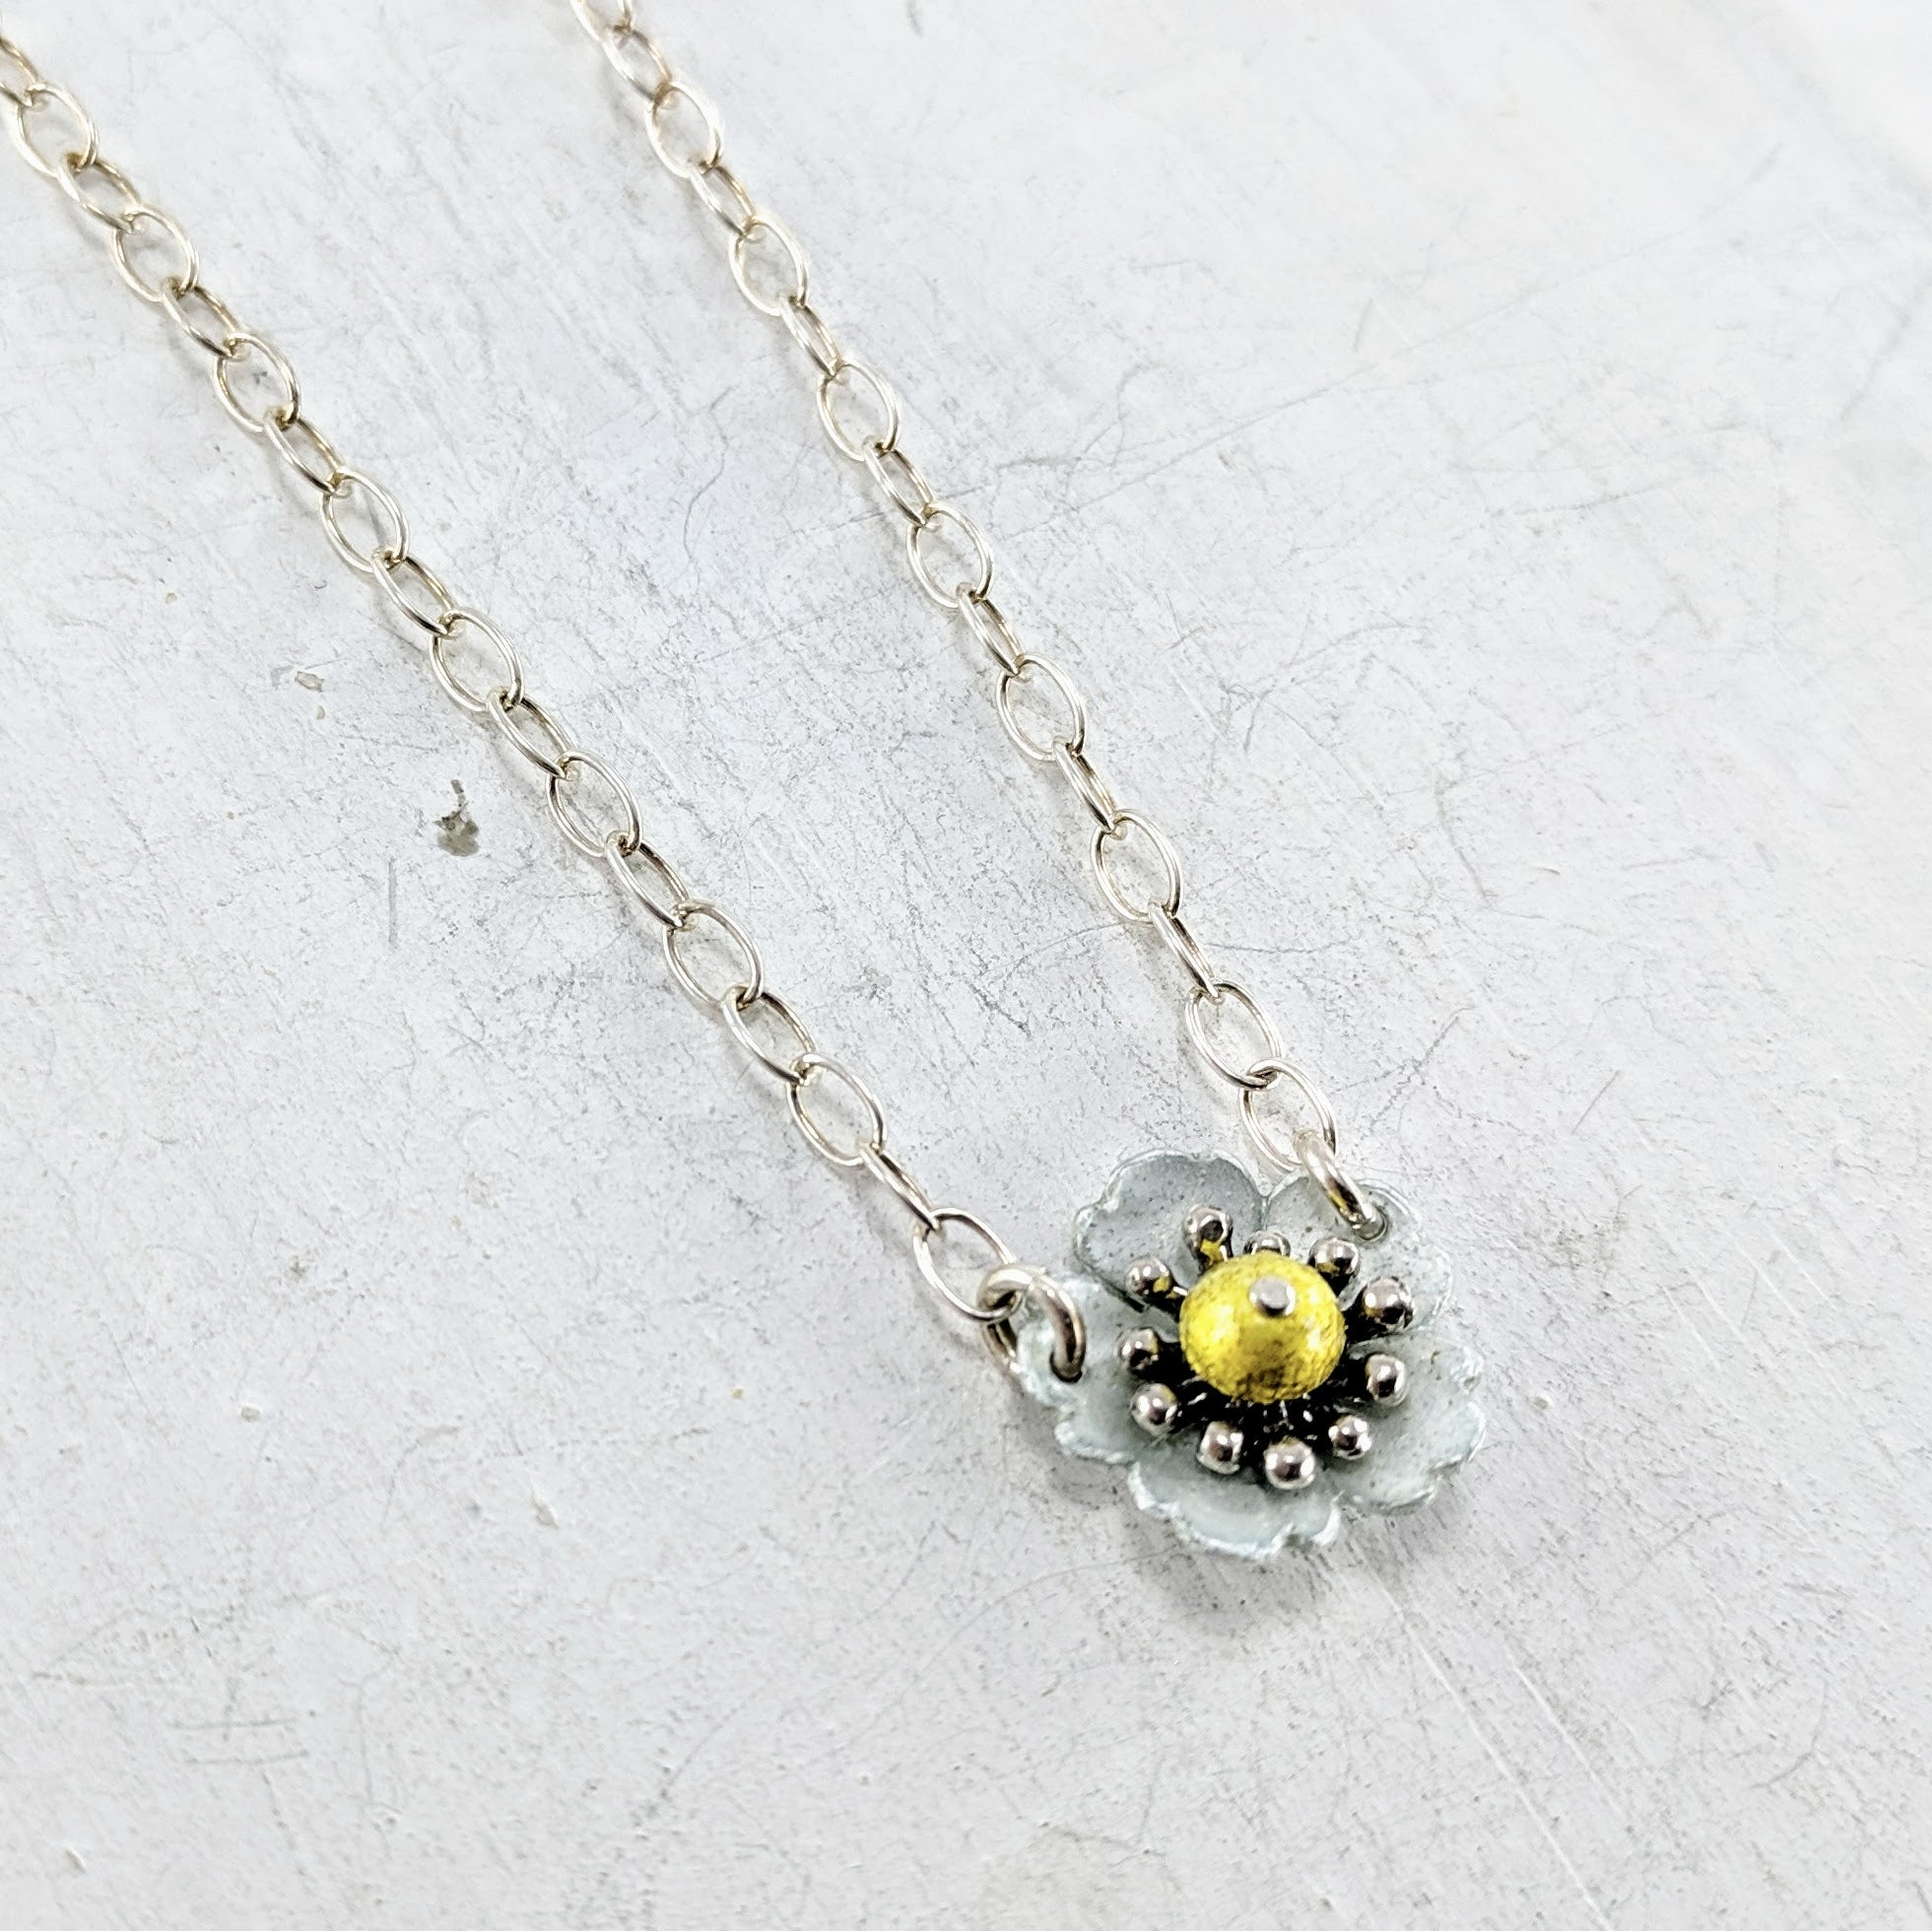 Handmade in New Zealand, this is a silver necklace with a enamelled fine silver alpine strawberry pendant yellow and blue